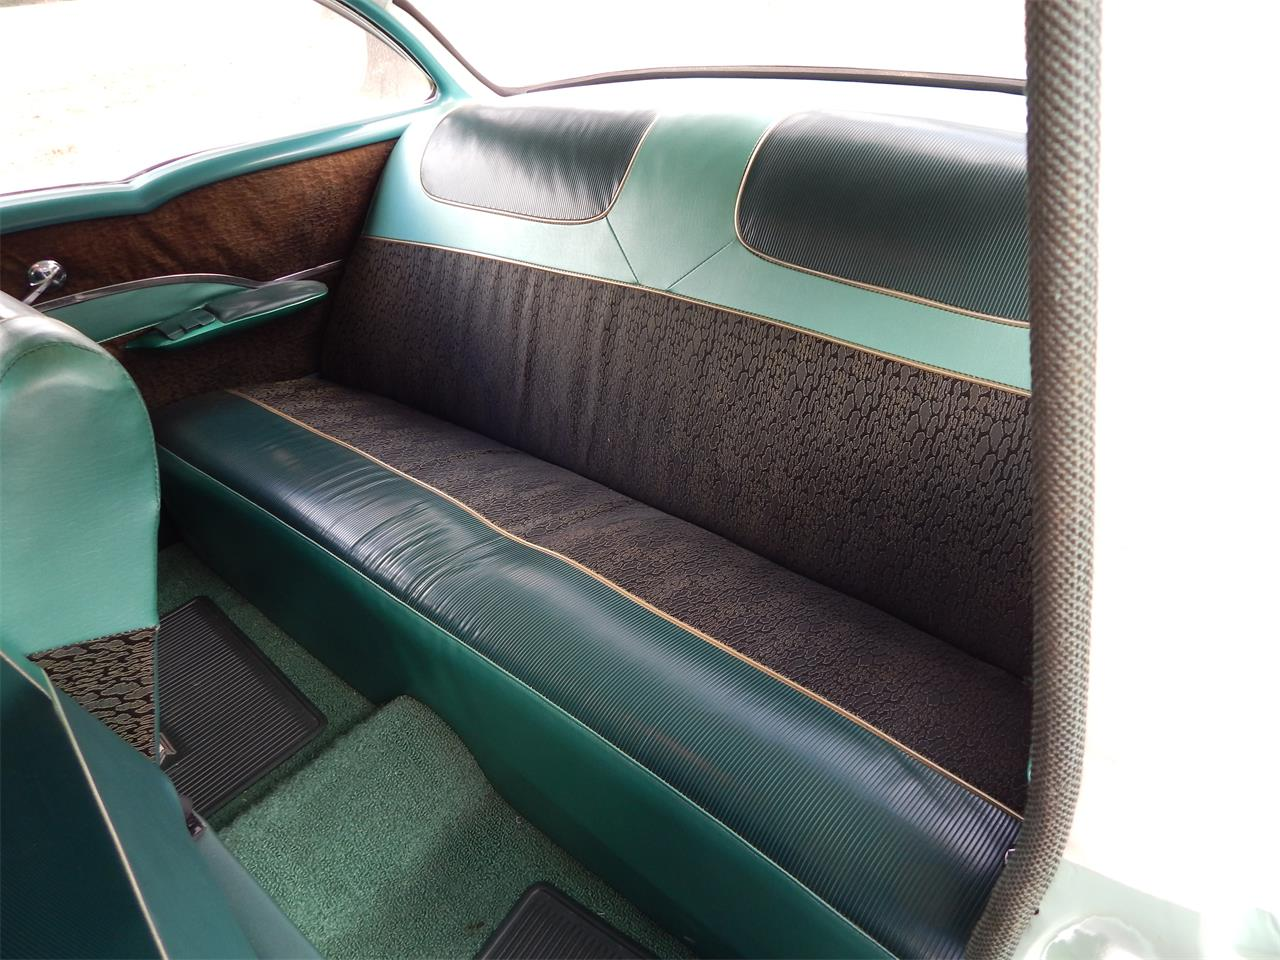 1957 Chevrolet Bel Air for sale in Online, Online Auction – photo 21